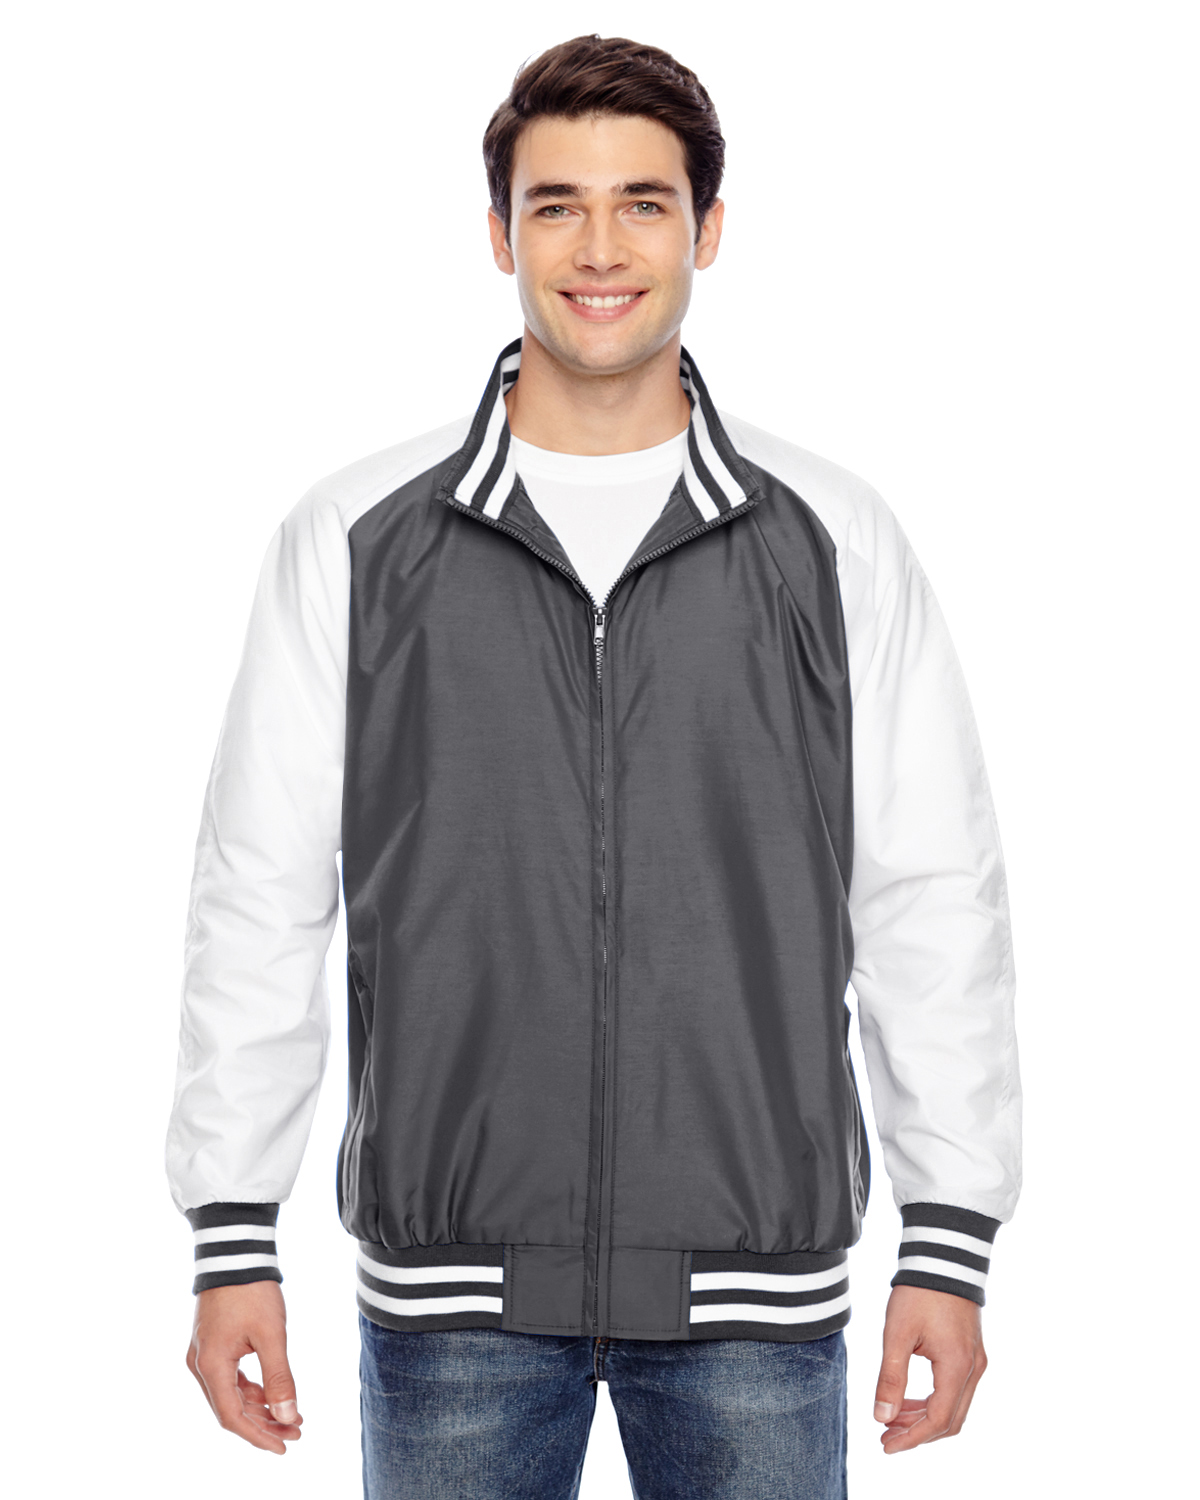 TT74 Team 365 Men's Championship Jacket